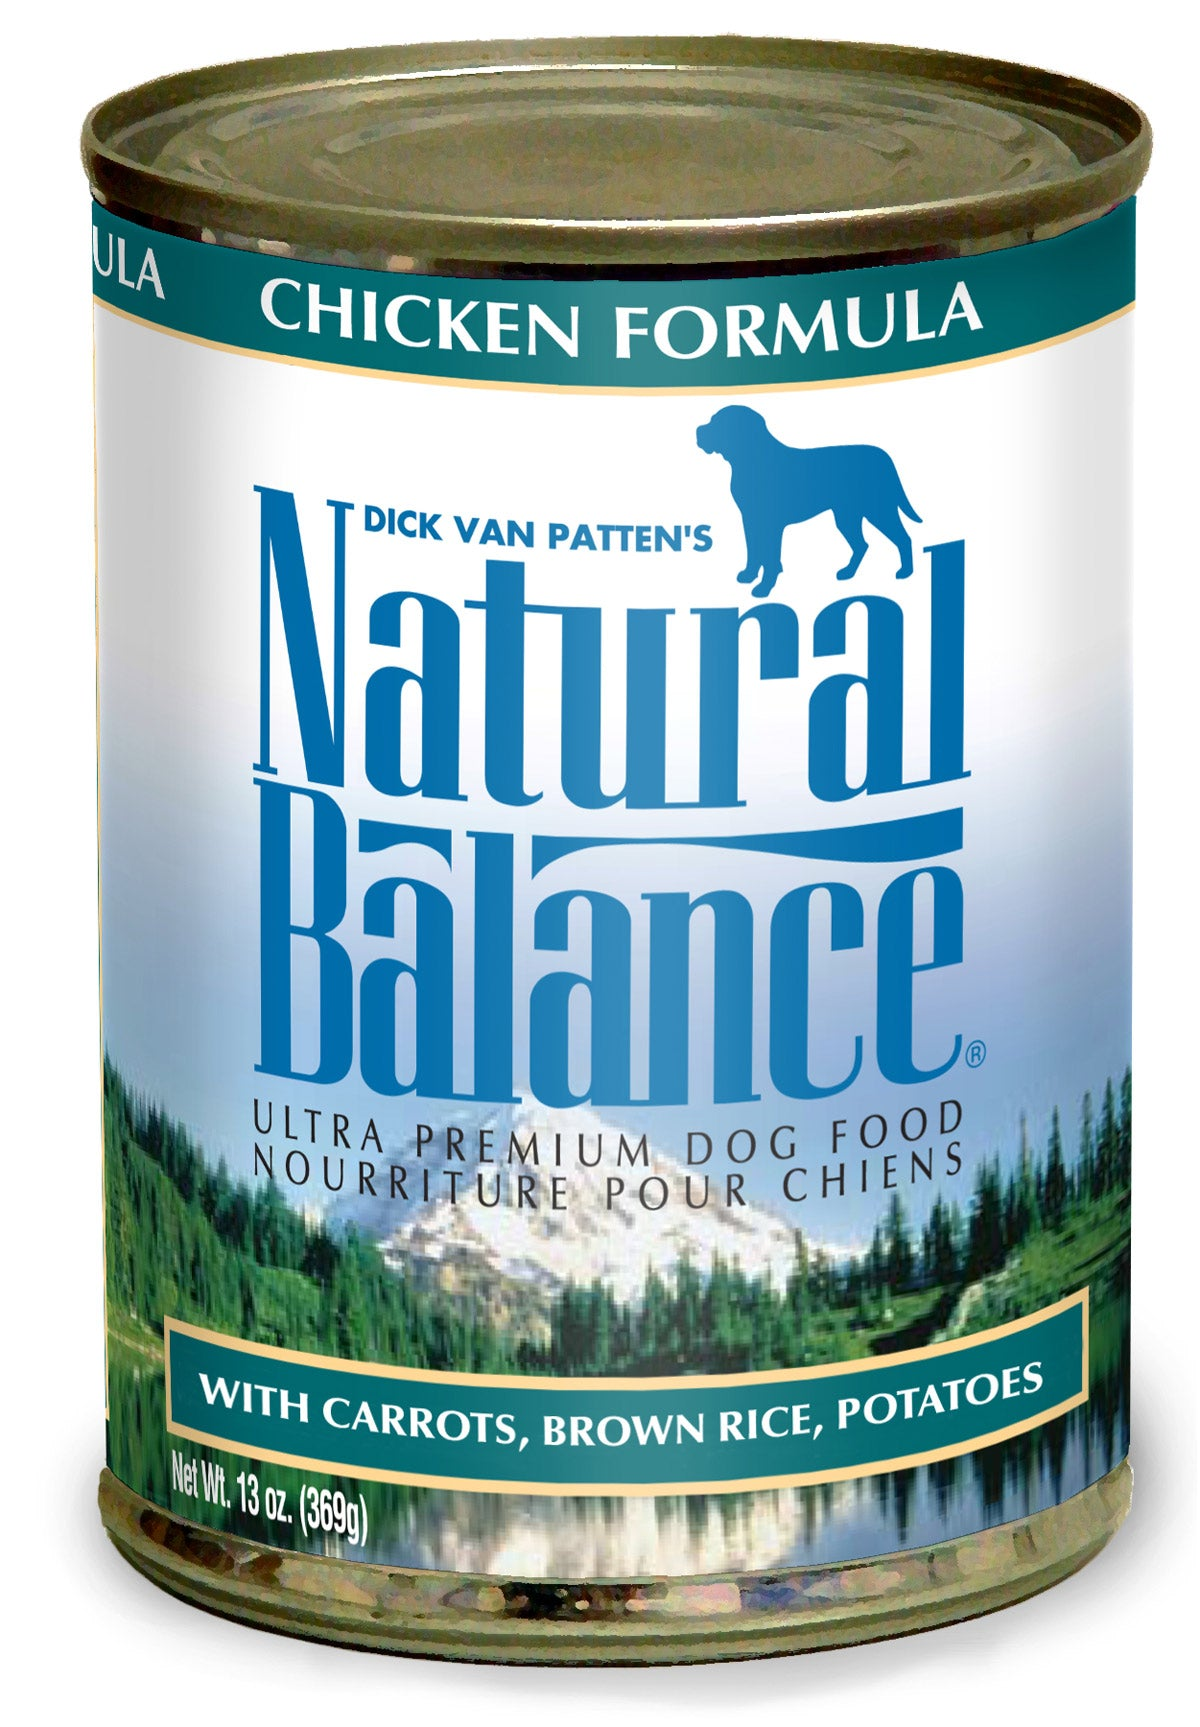 Natural Balance Ultra Premium Chicken Canned Wet Dog Food 13-oz can at NJPetSupply.com